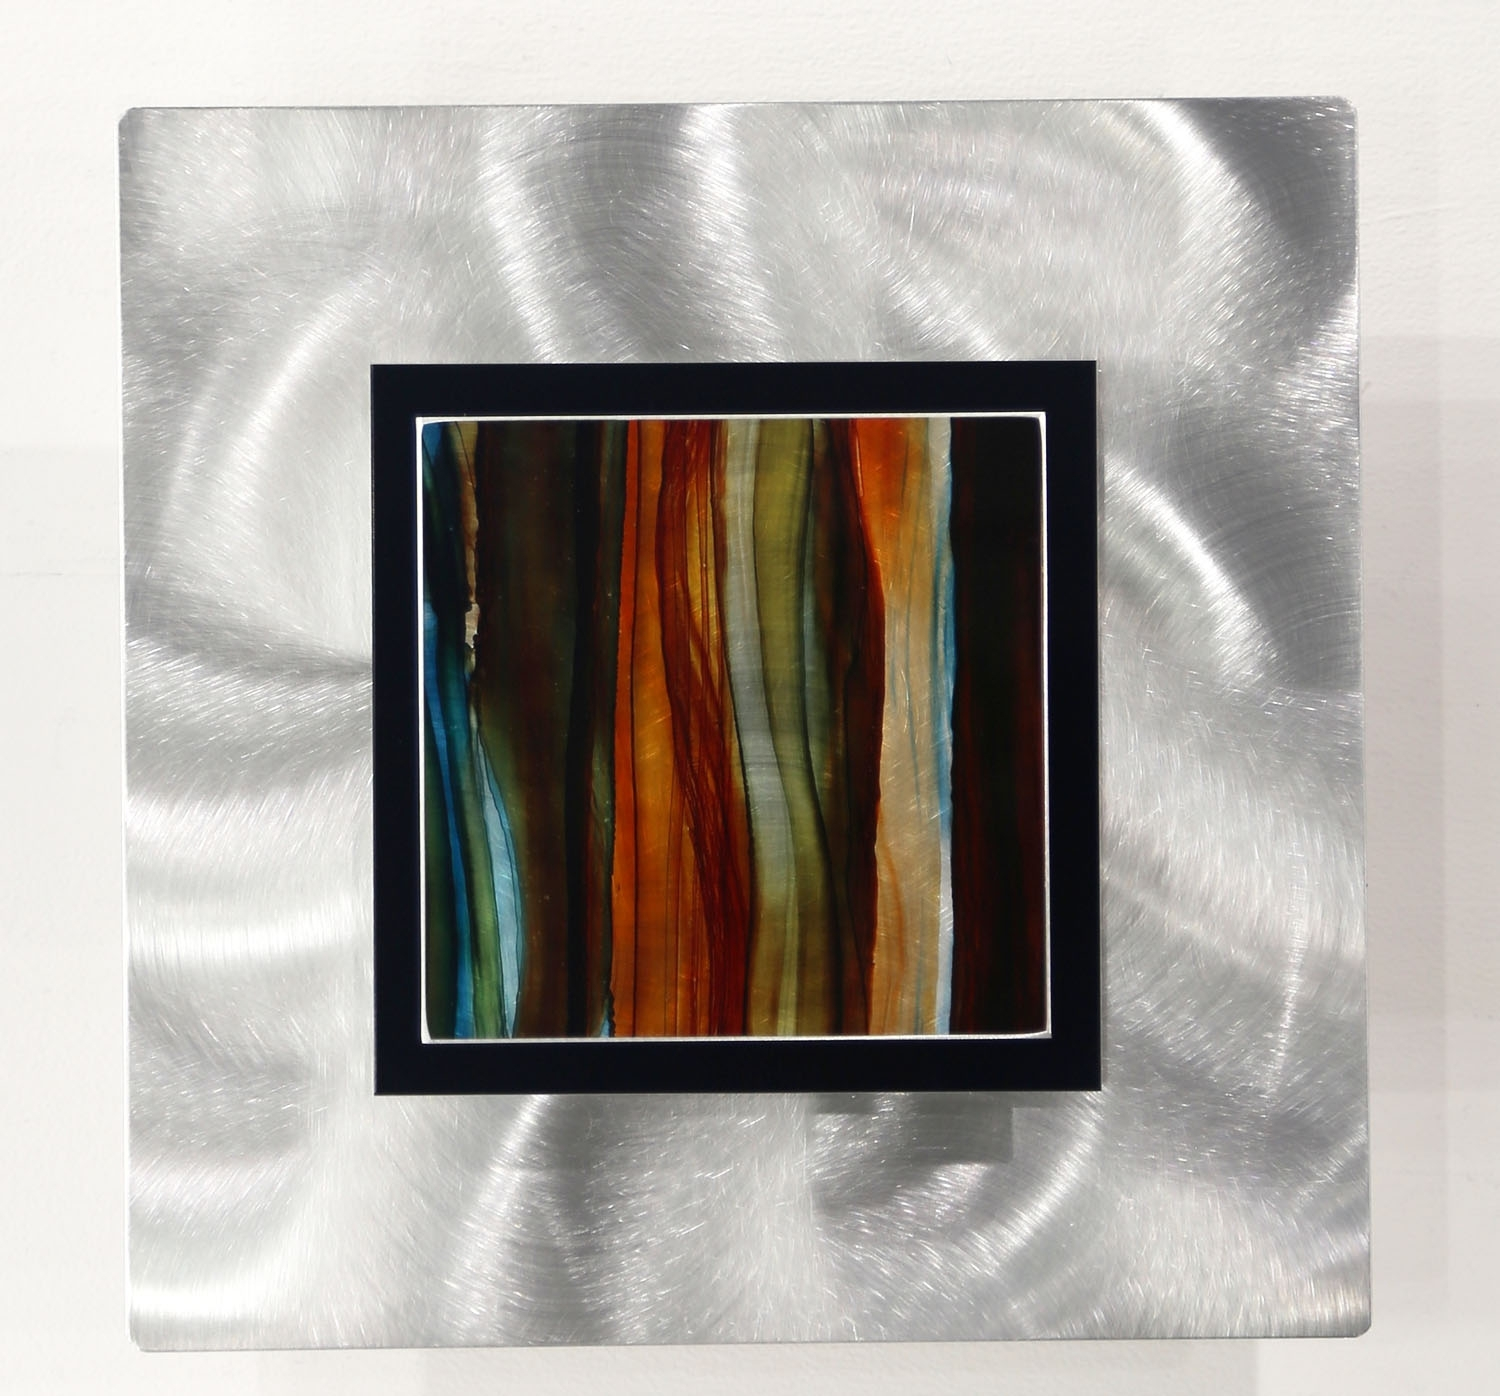 Oj 544Jon Allen – Contemporary Metal Wall Art Accent Inside Latest Earth Tones Wall Accents (View 11 of 15)